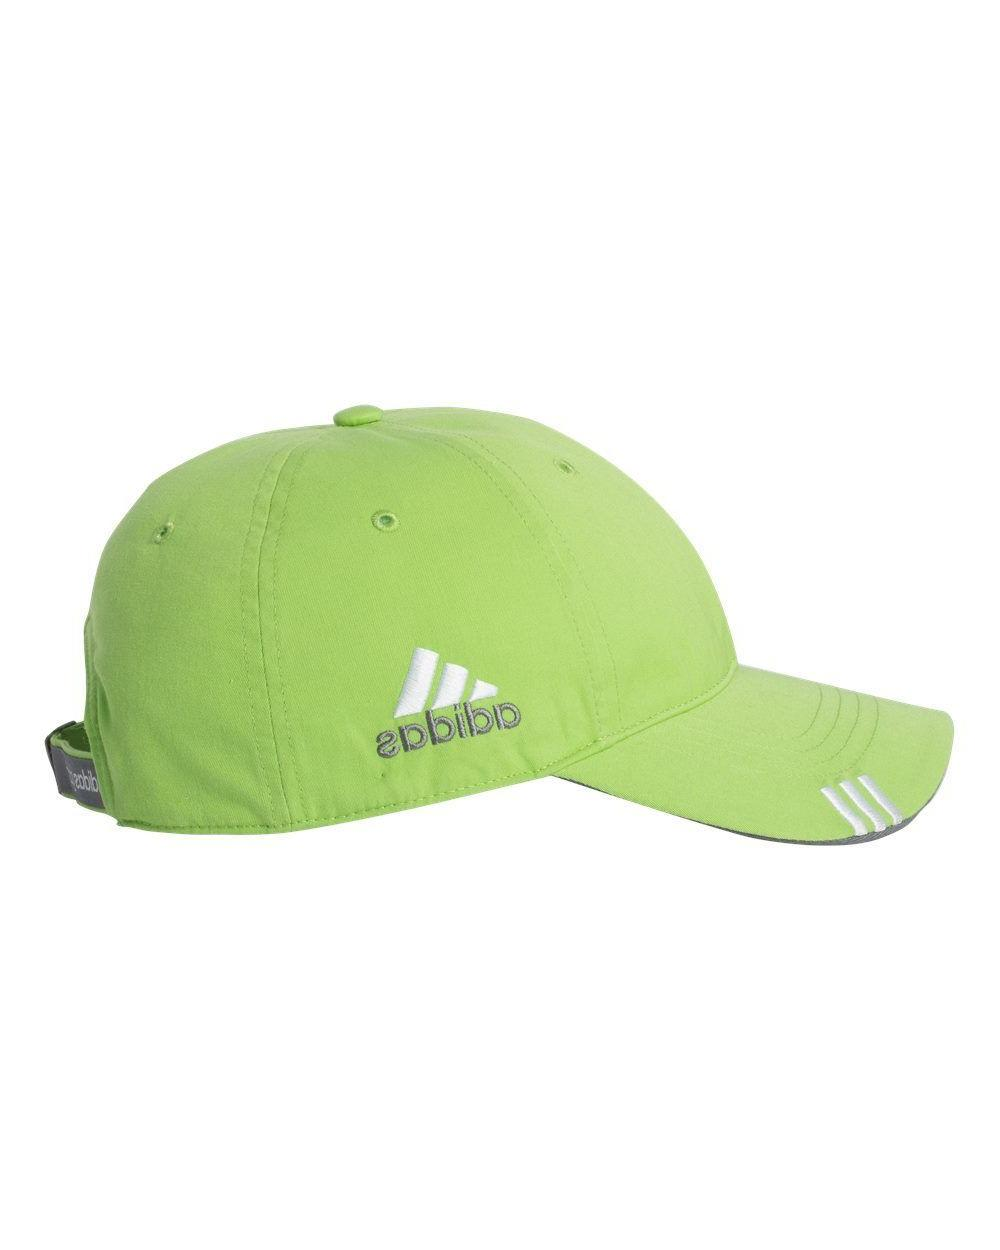 ADIDAS GOLF Baseball Unstructured Structure Hat SIZE